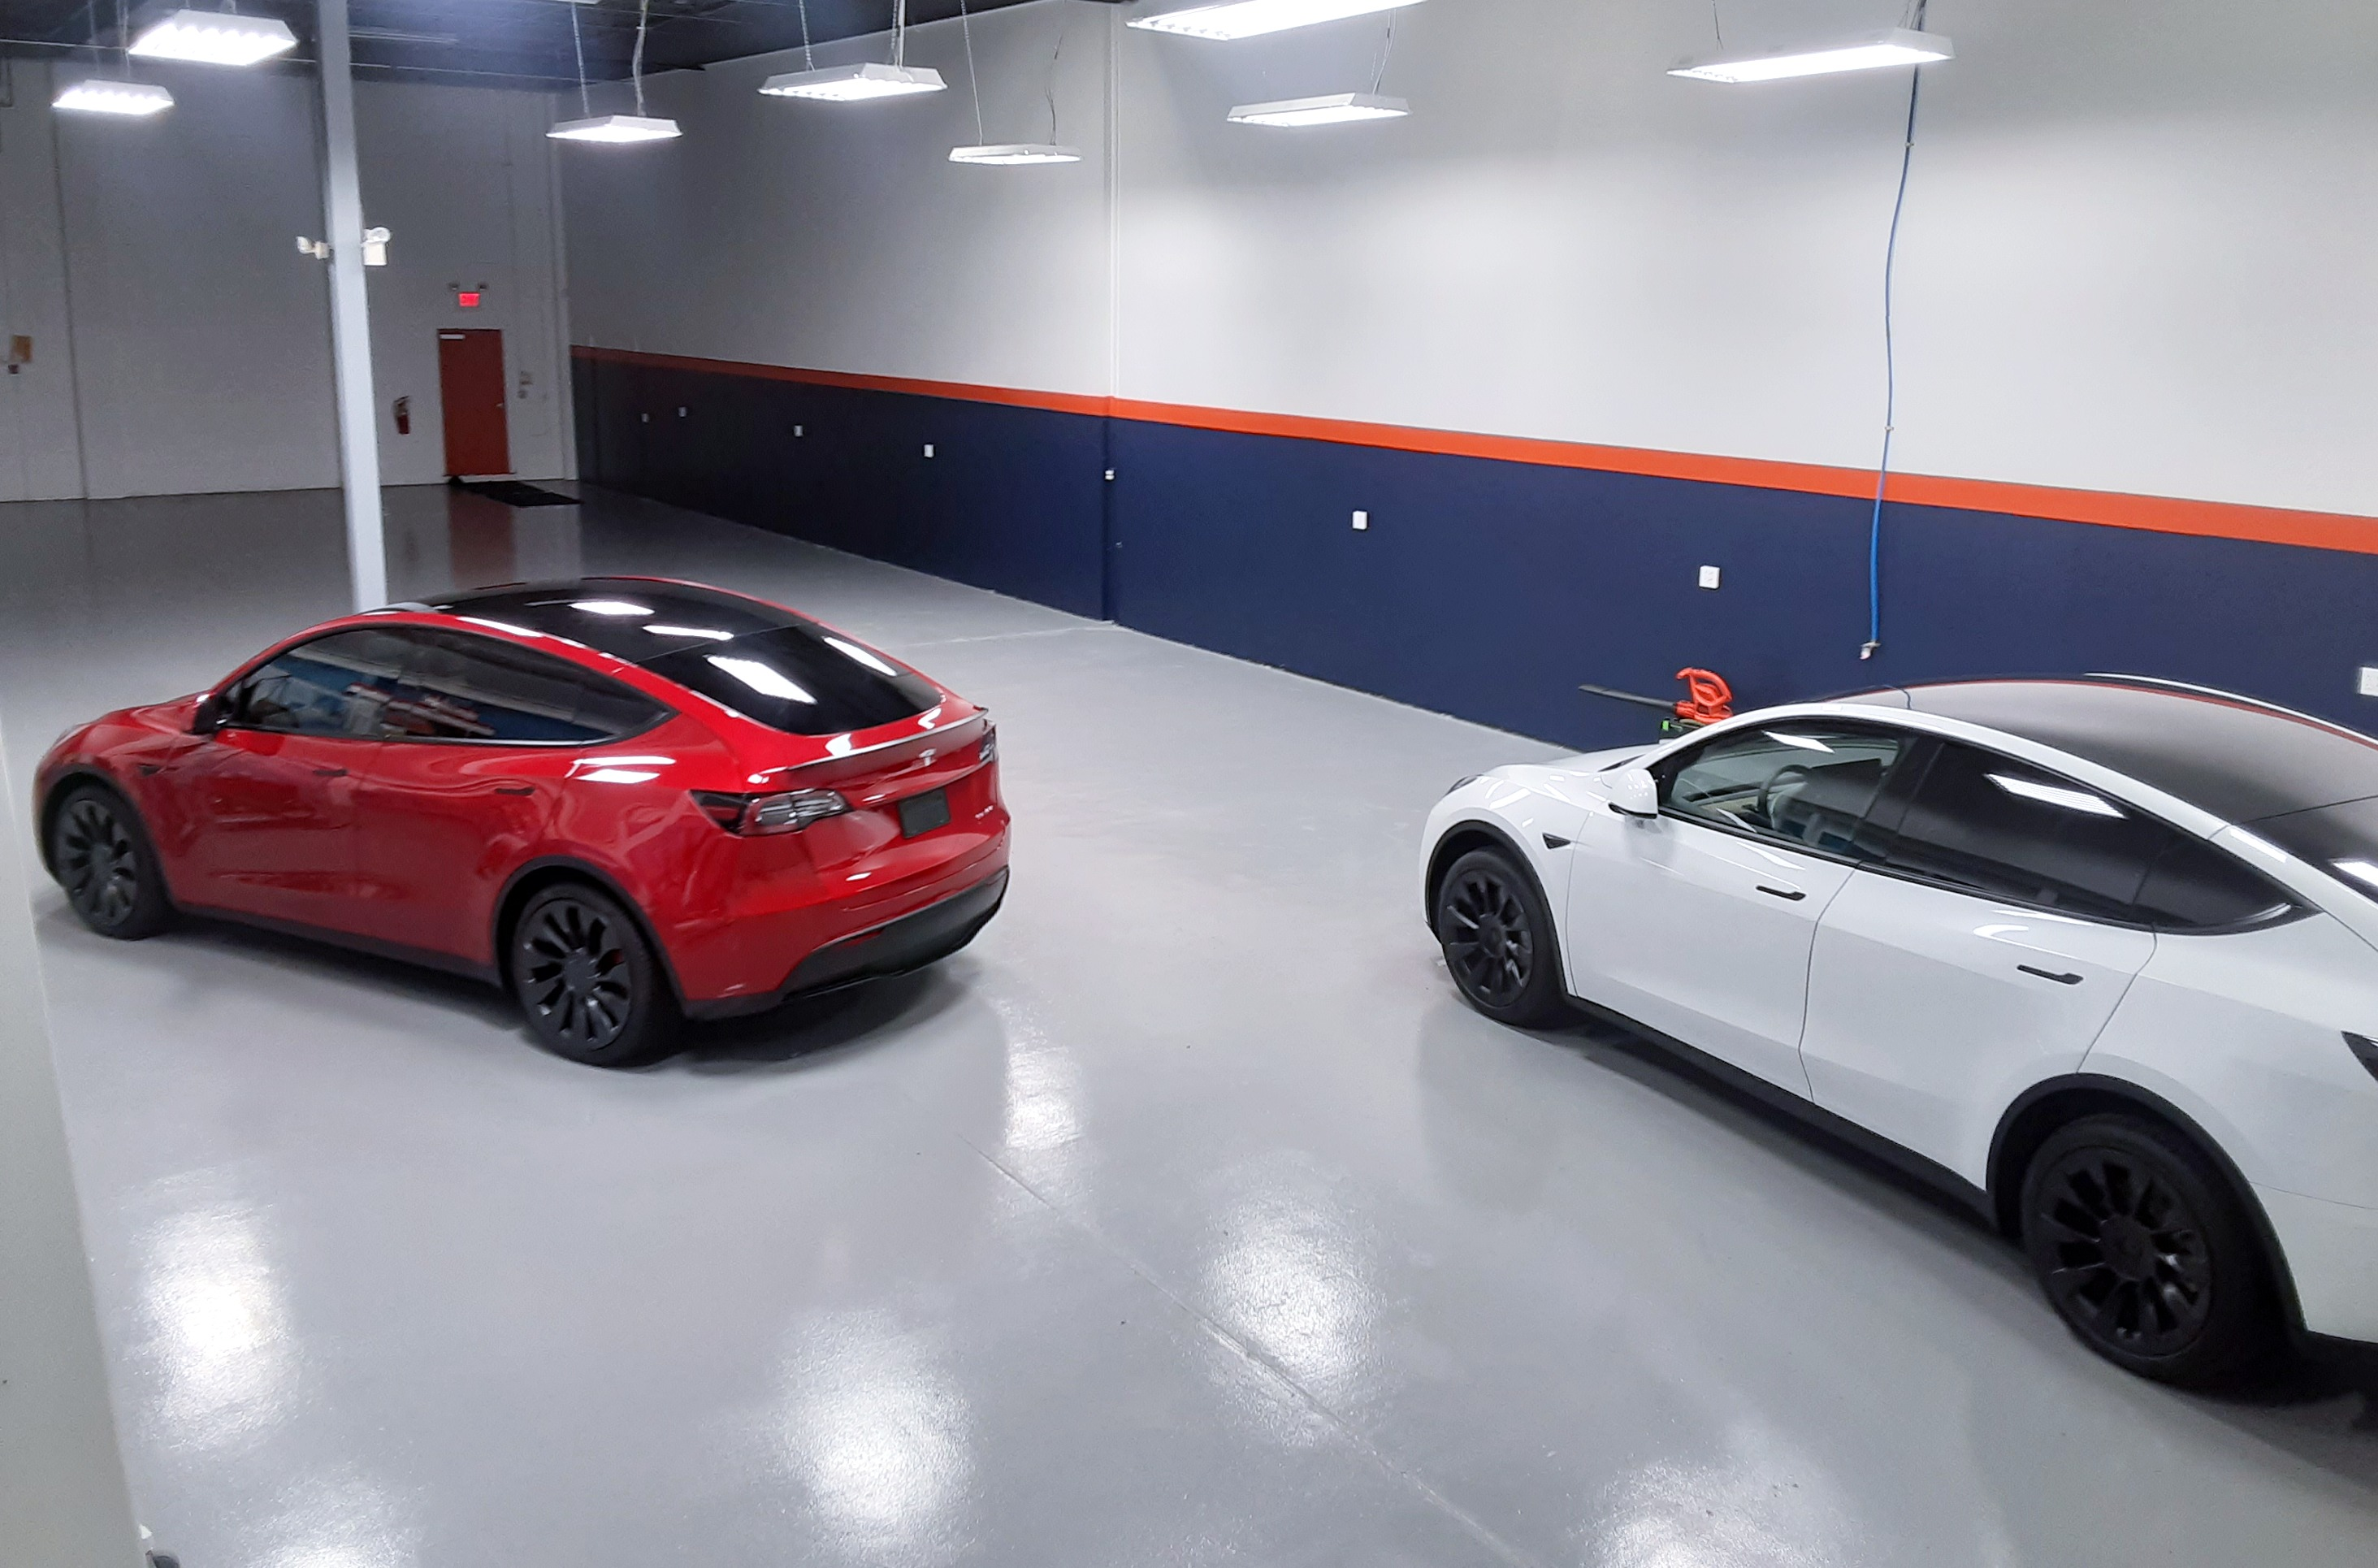 Tesla Model Y Red or White?